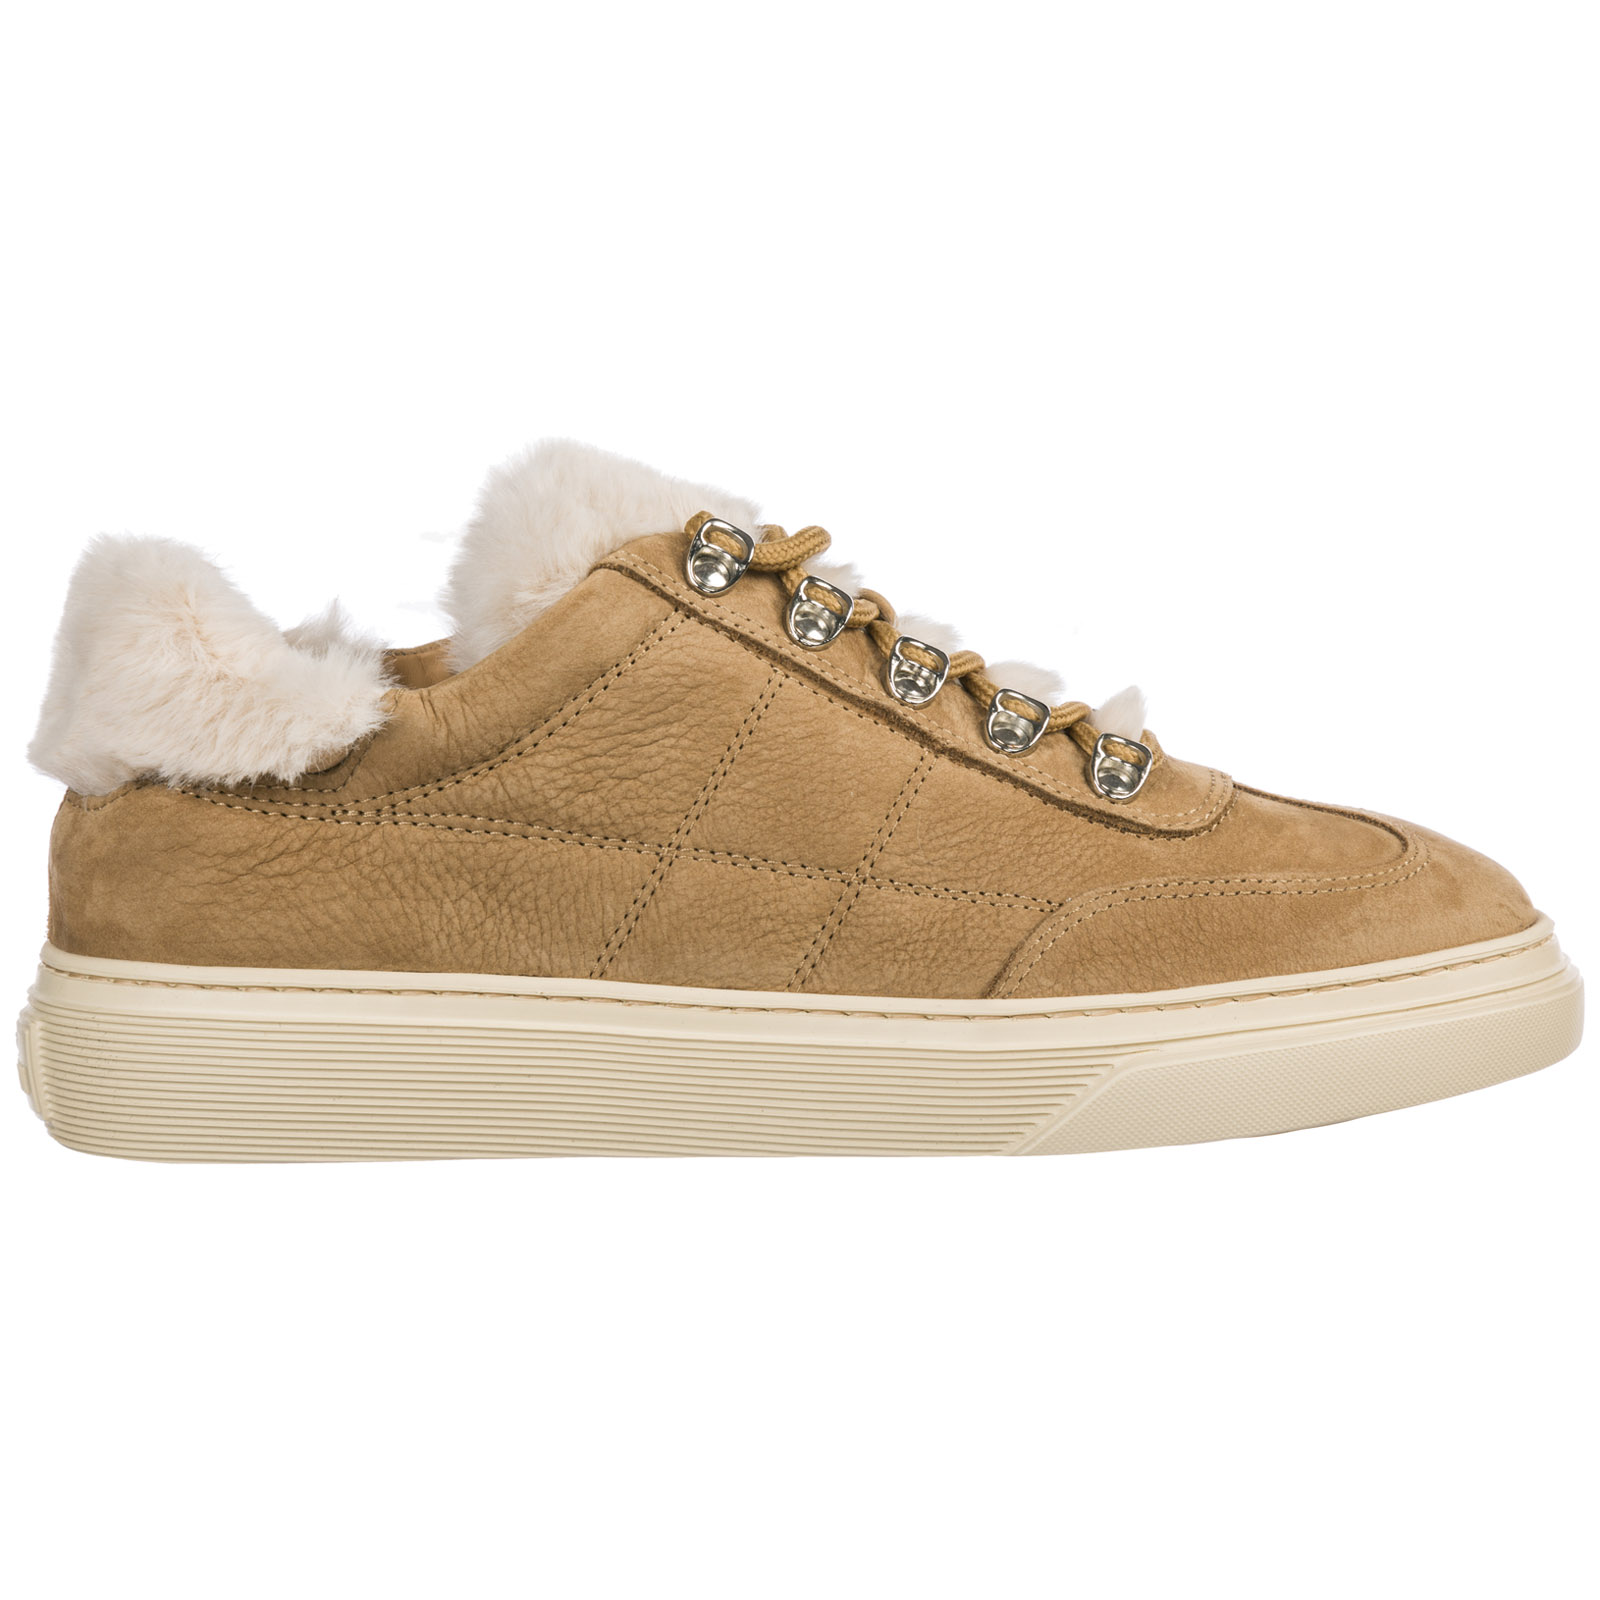 3bef206c3fe Hogan Women's Shoes Leather Trainers Sneakers H365 In Beige | ModeSens